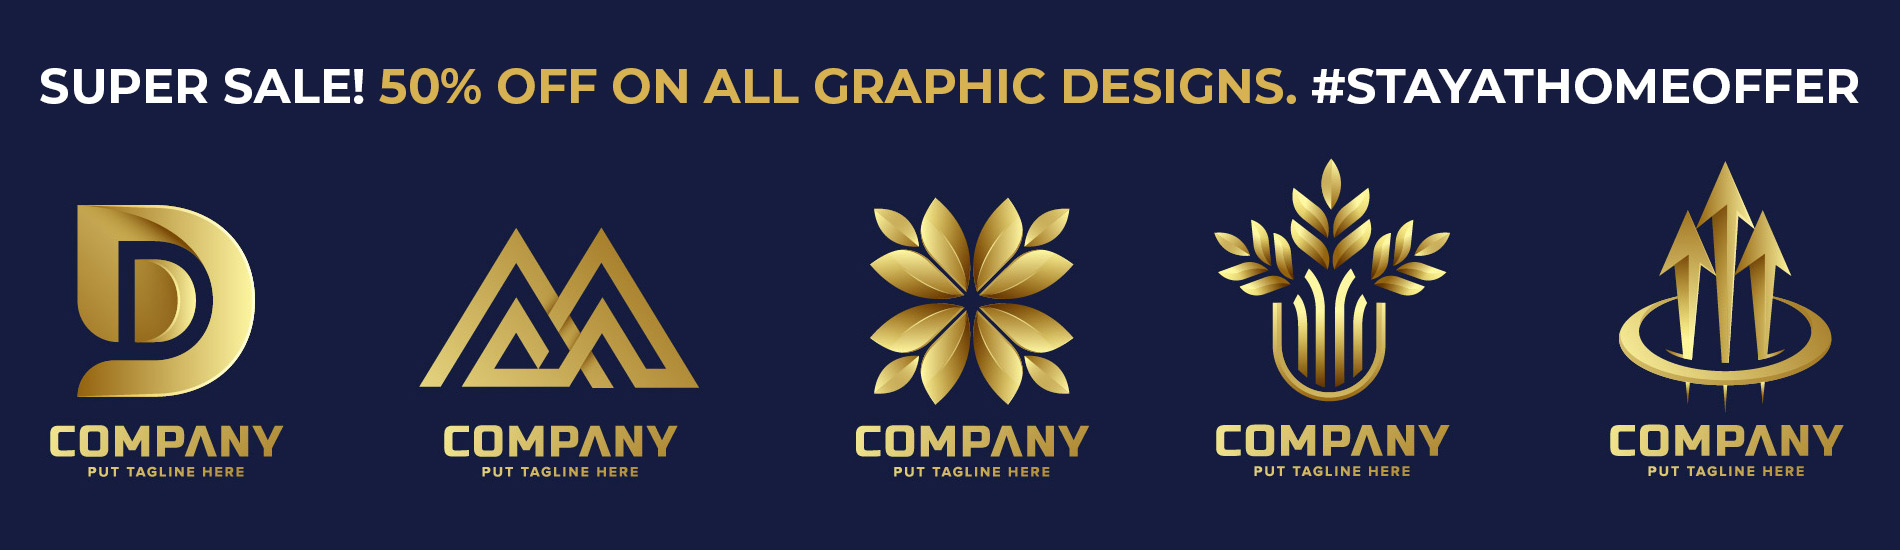 Graphic Design Stay at Home Offer!